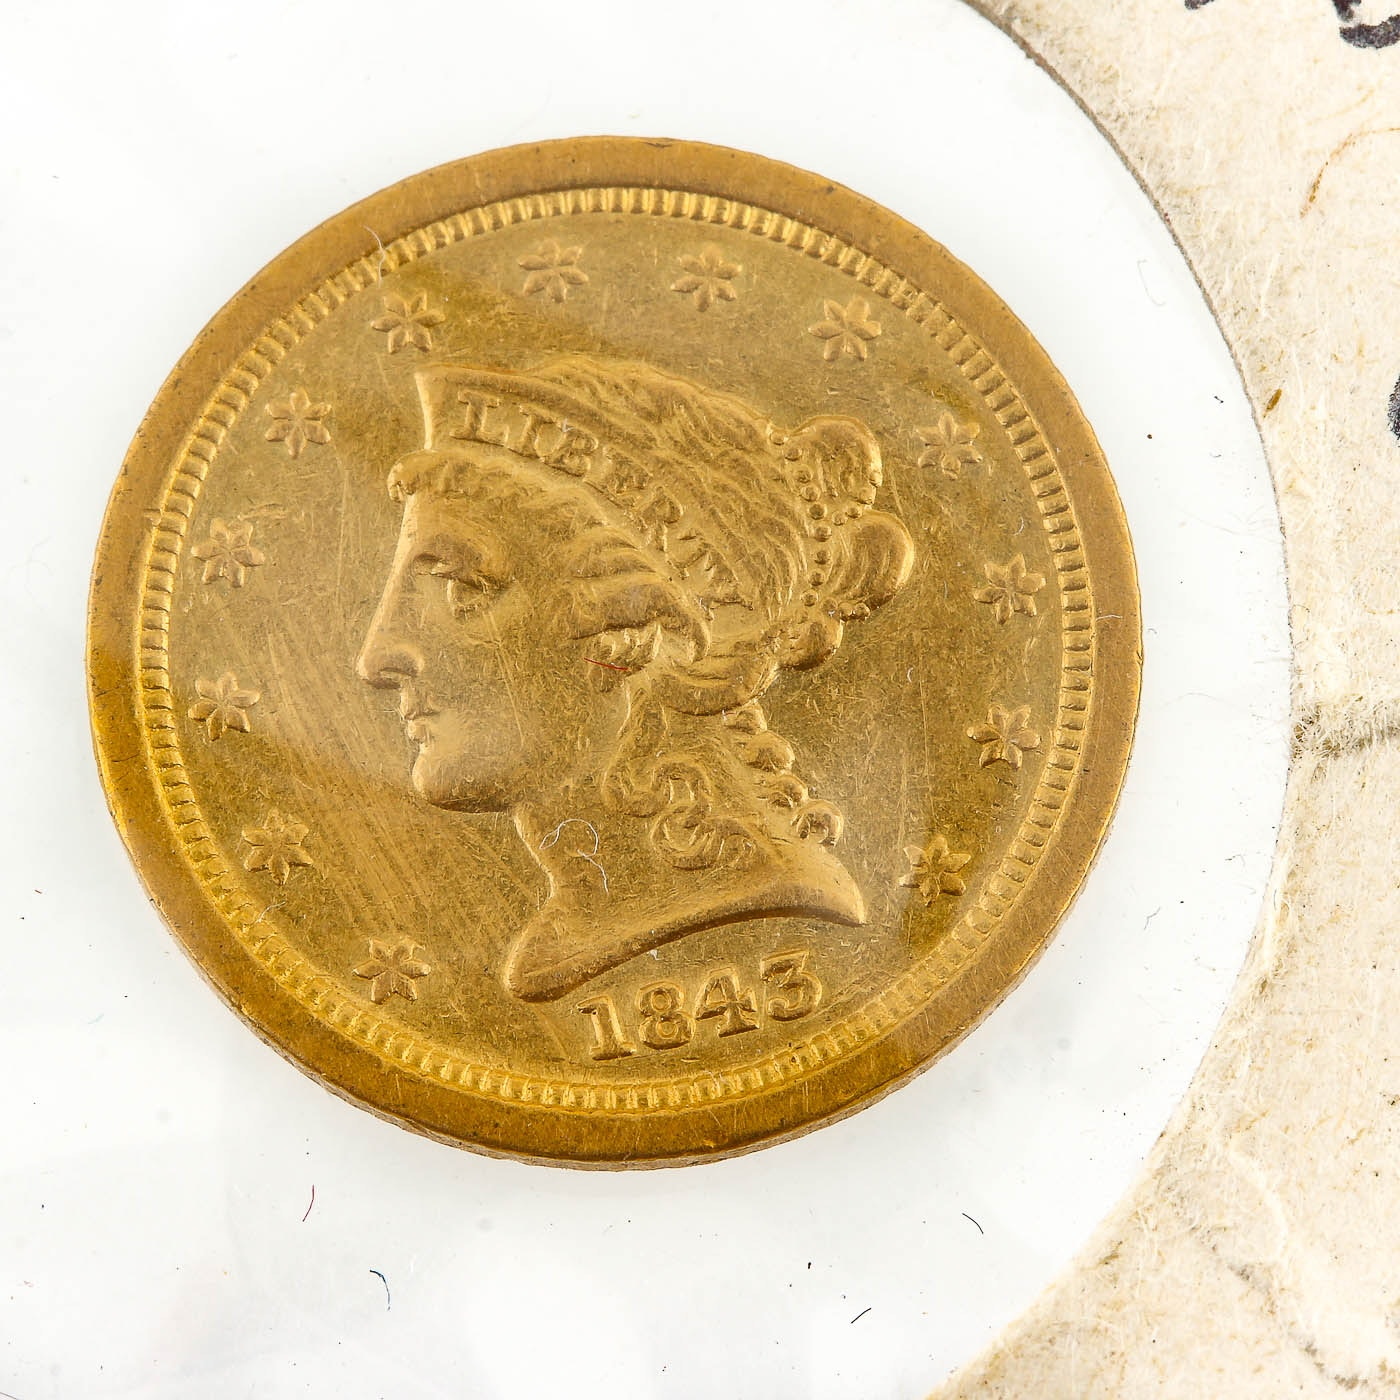 1843-O Liberty Head $2 1/2 Gold Coin